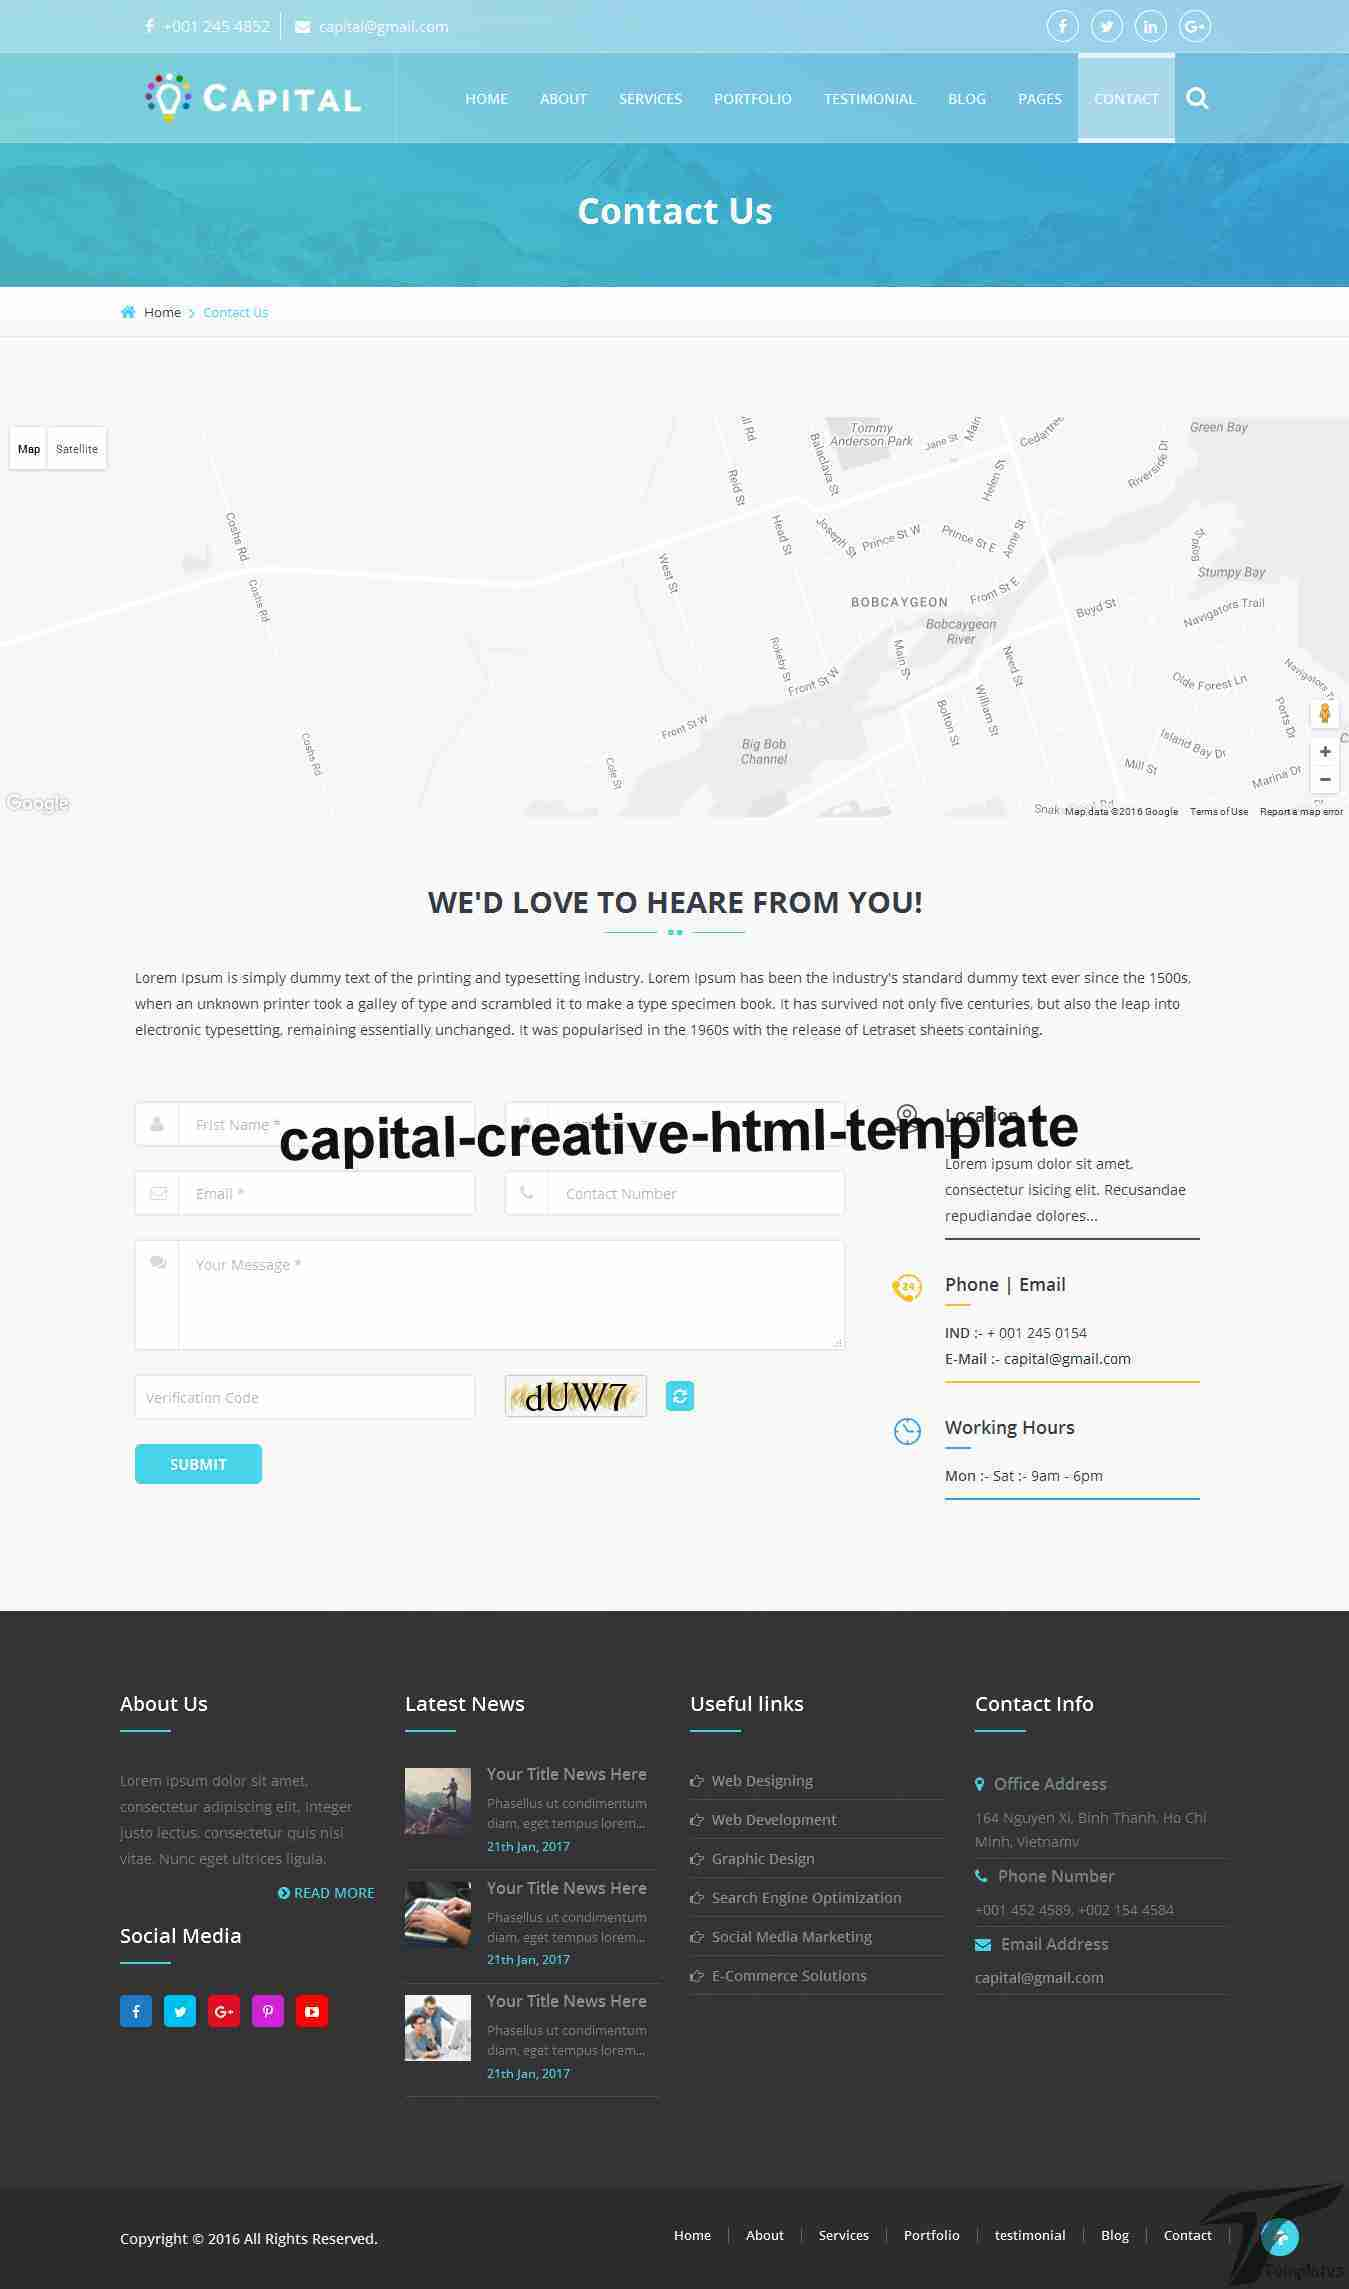 https://images.besthemes.com/images/h1_capital-creative-html-template13-_-205260579/Theme-s20s-Preview/08_Contact-Us.png